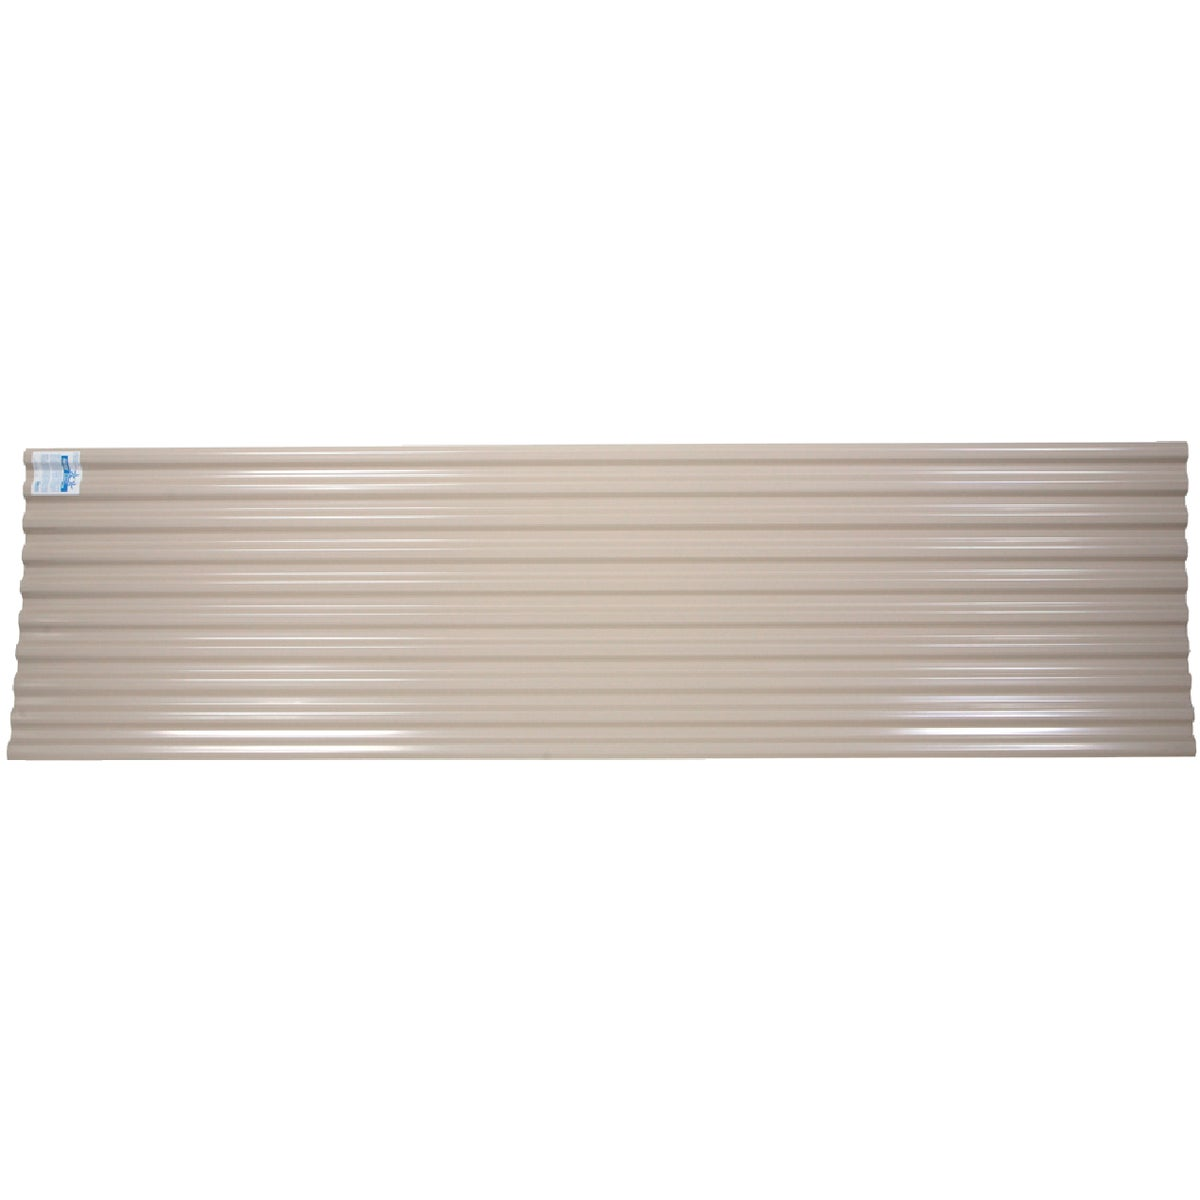 12' TAN CORRUGATED PANEL - 130831 by Ofic North America